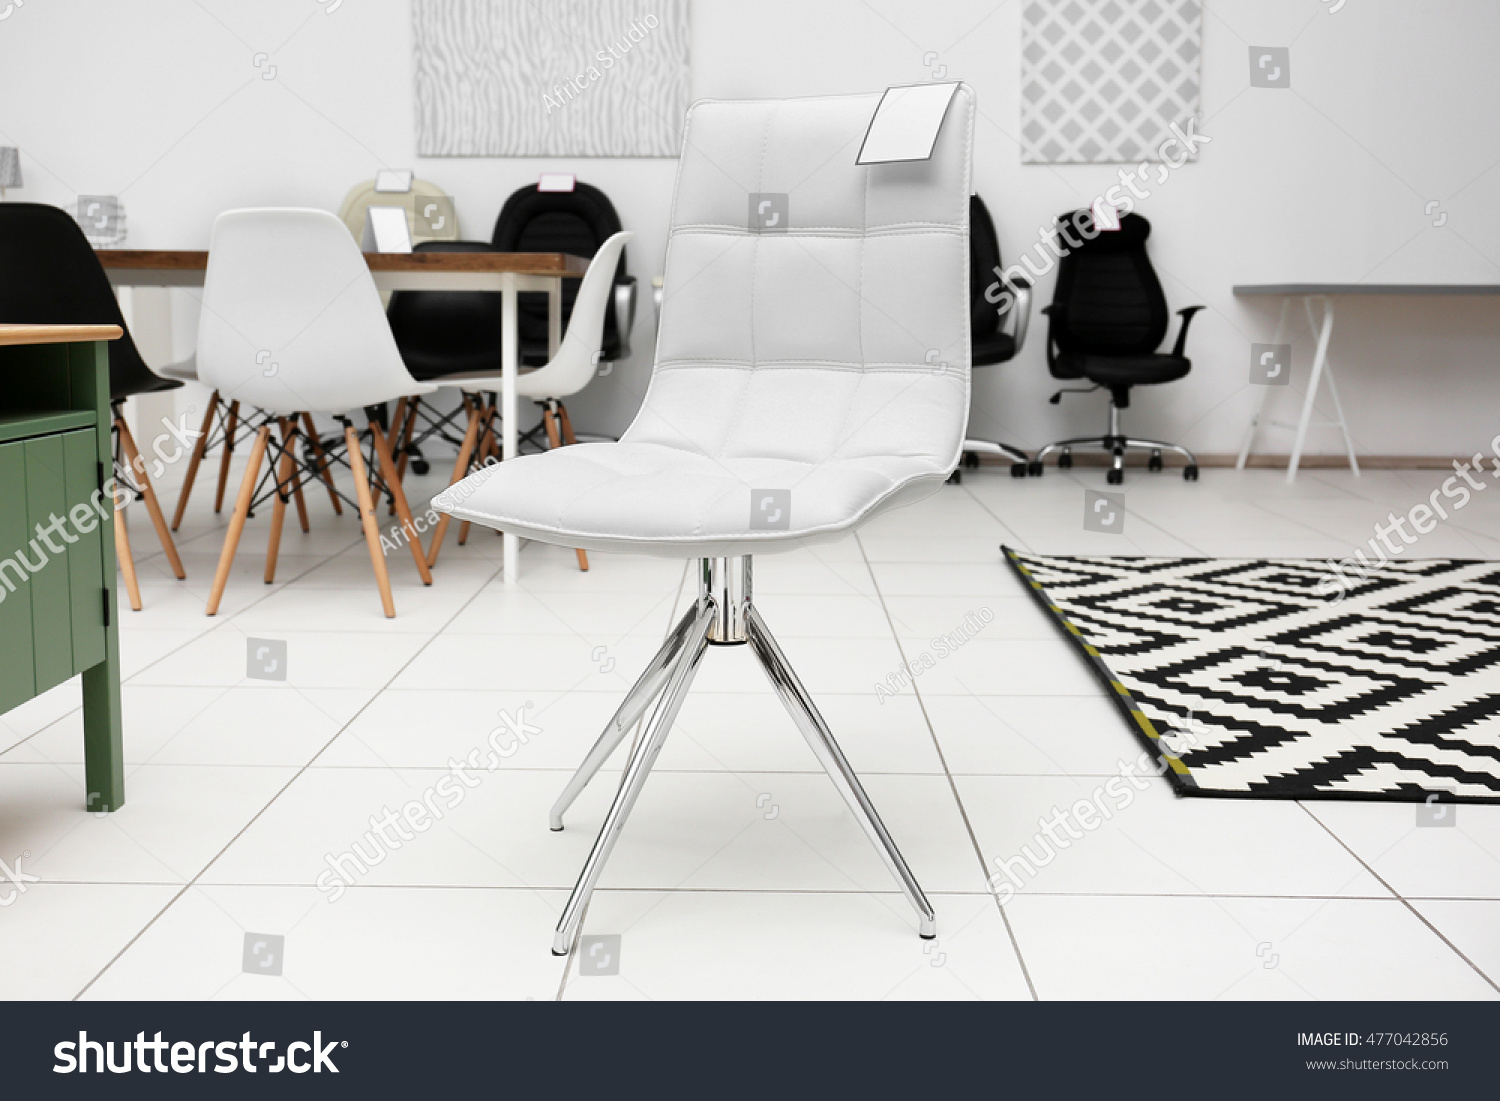 Modern Chair Sale Furniture Store Stock Photo 477042856